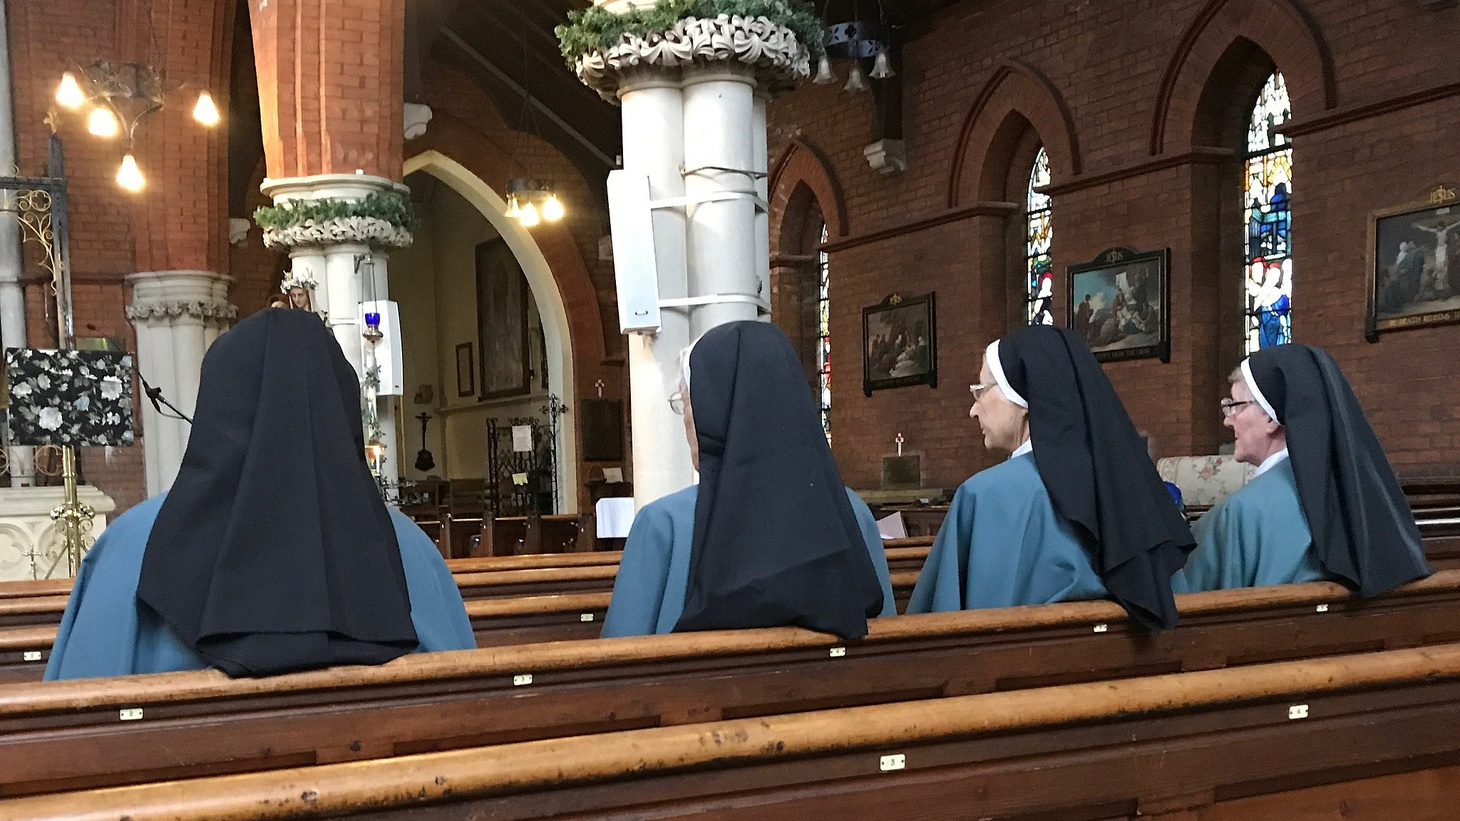 Four Anglican nuns from the Community of the Sisters of the Church (United Kingdom Province)